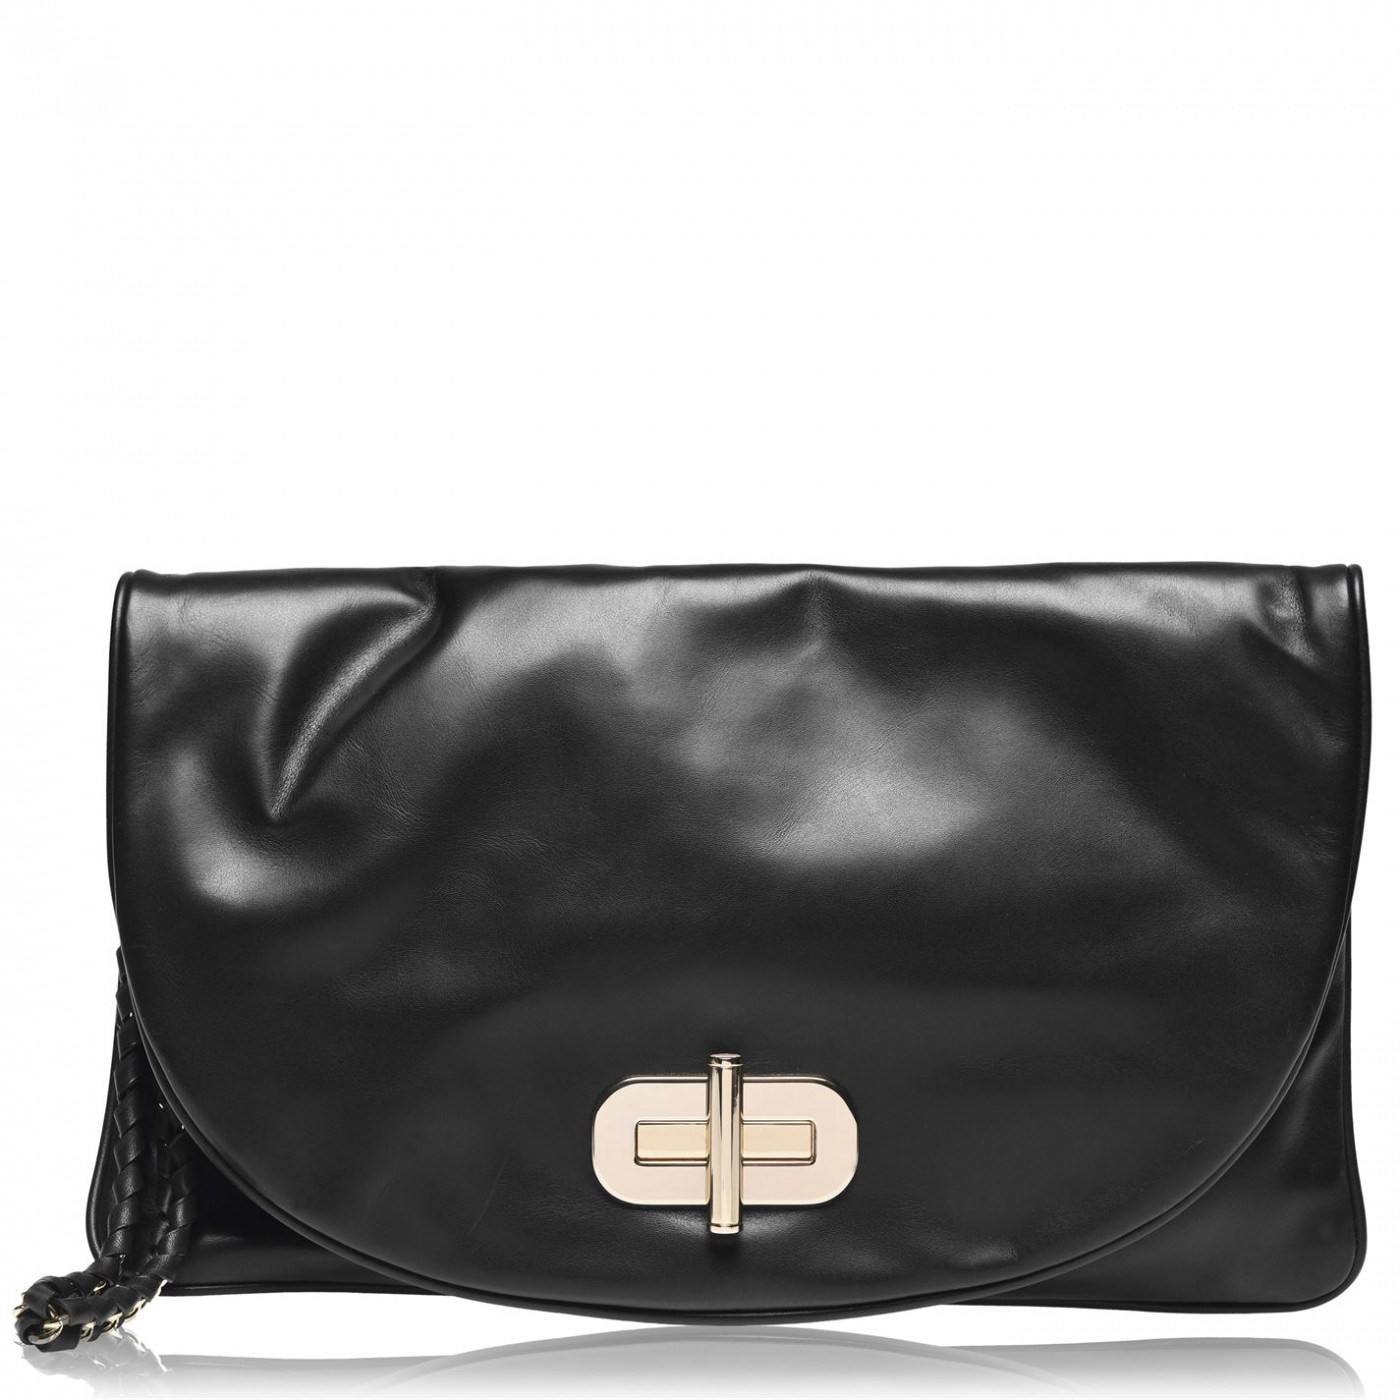 Tommy Hilfiger Soft Leather Turnlock Clutch Bag